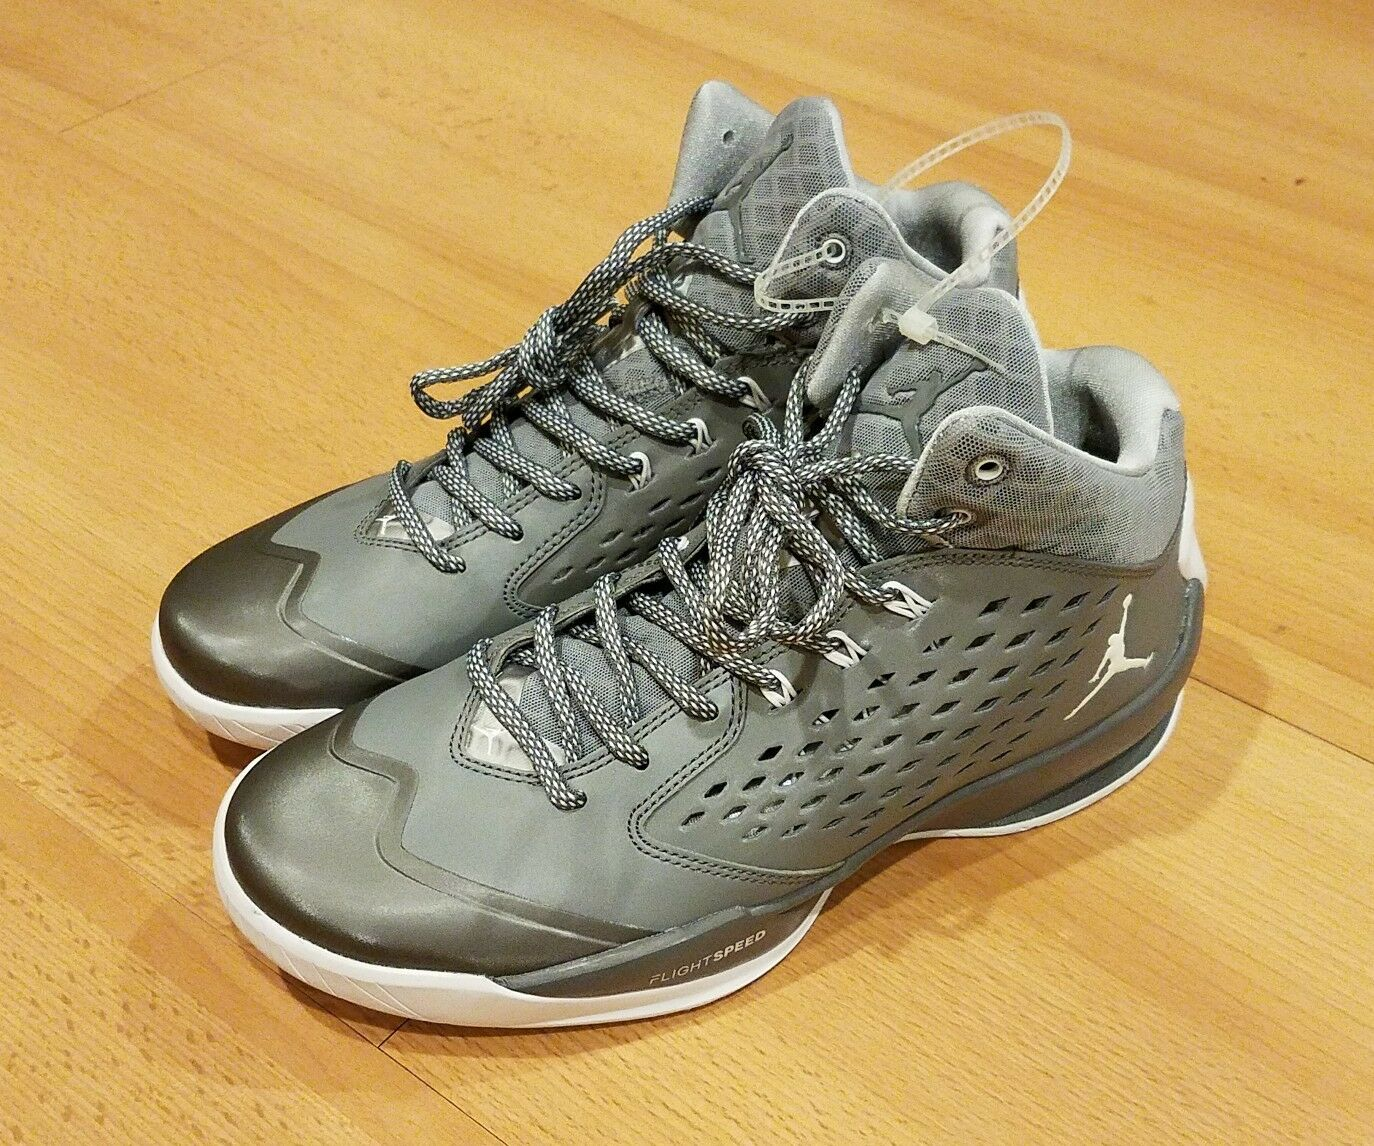 Comfortable and good-looking NIKE JORDAN RISING HIGH FLIGHT BASKETBALL SHOES 768931-003 GREY WHITE MENS 7.5